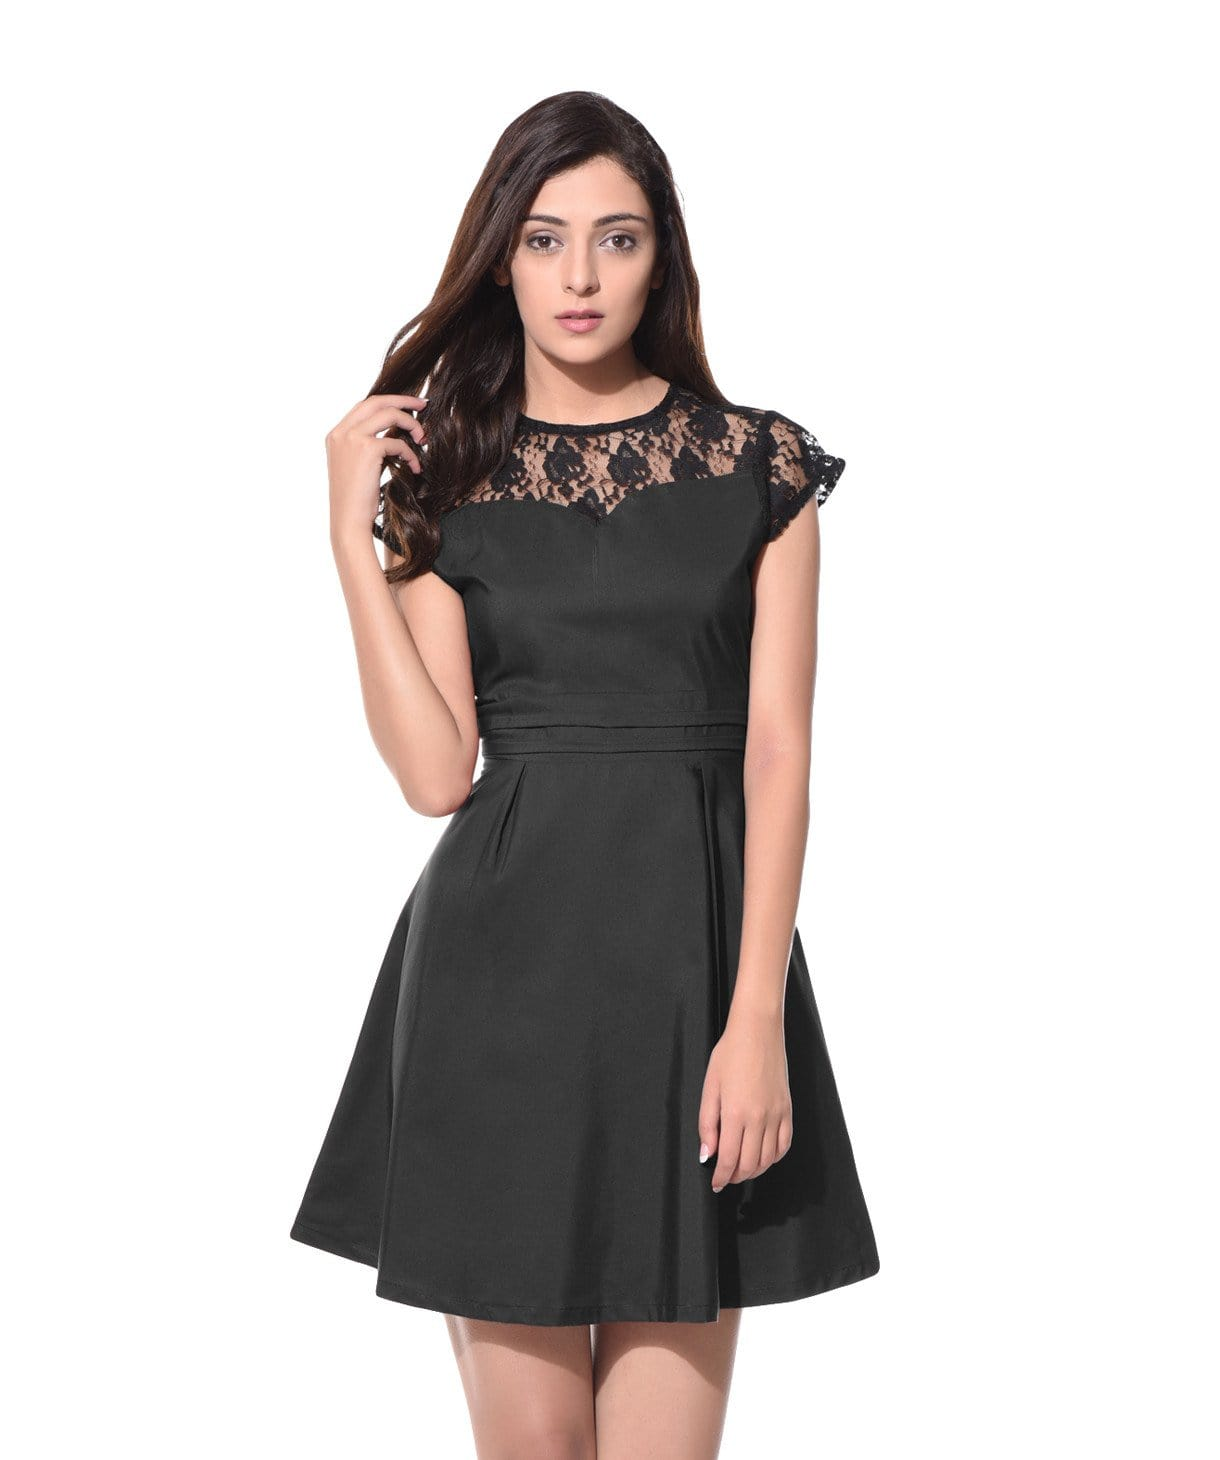 The Revive Spark Skater Dress